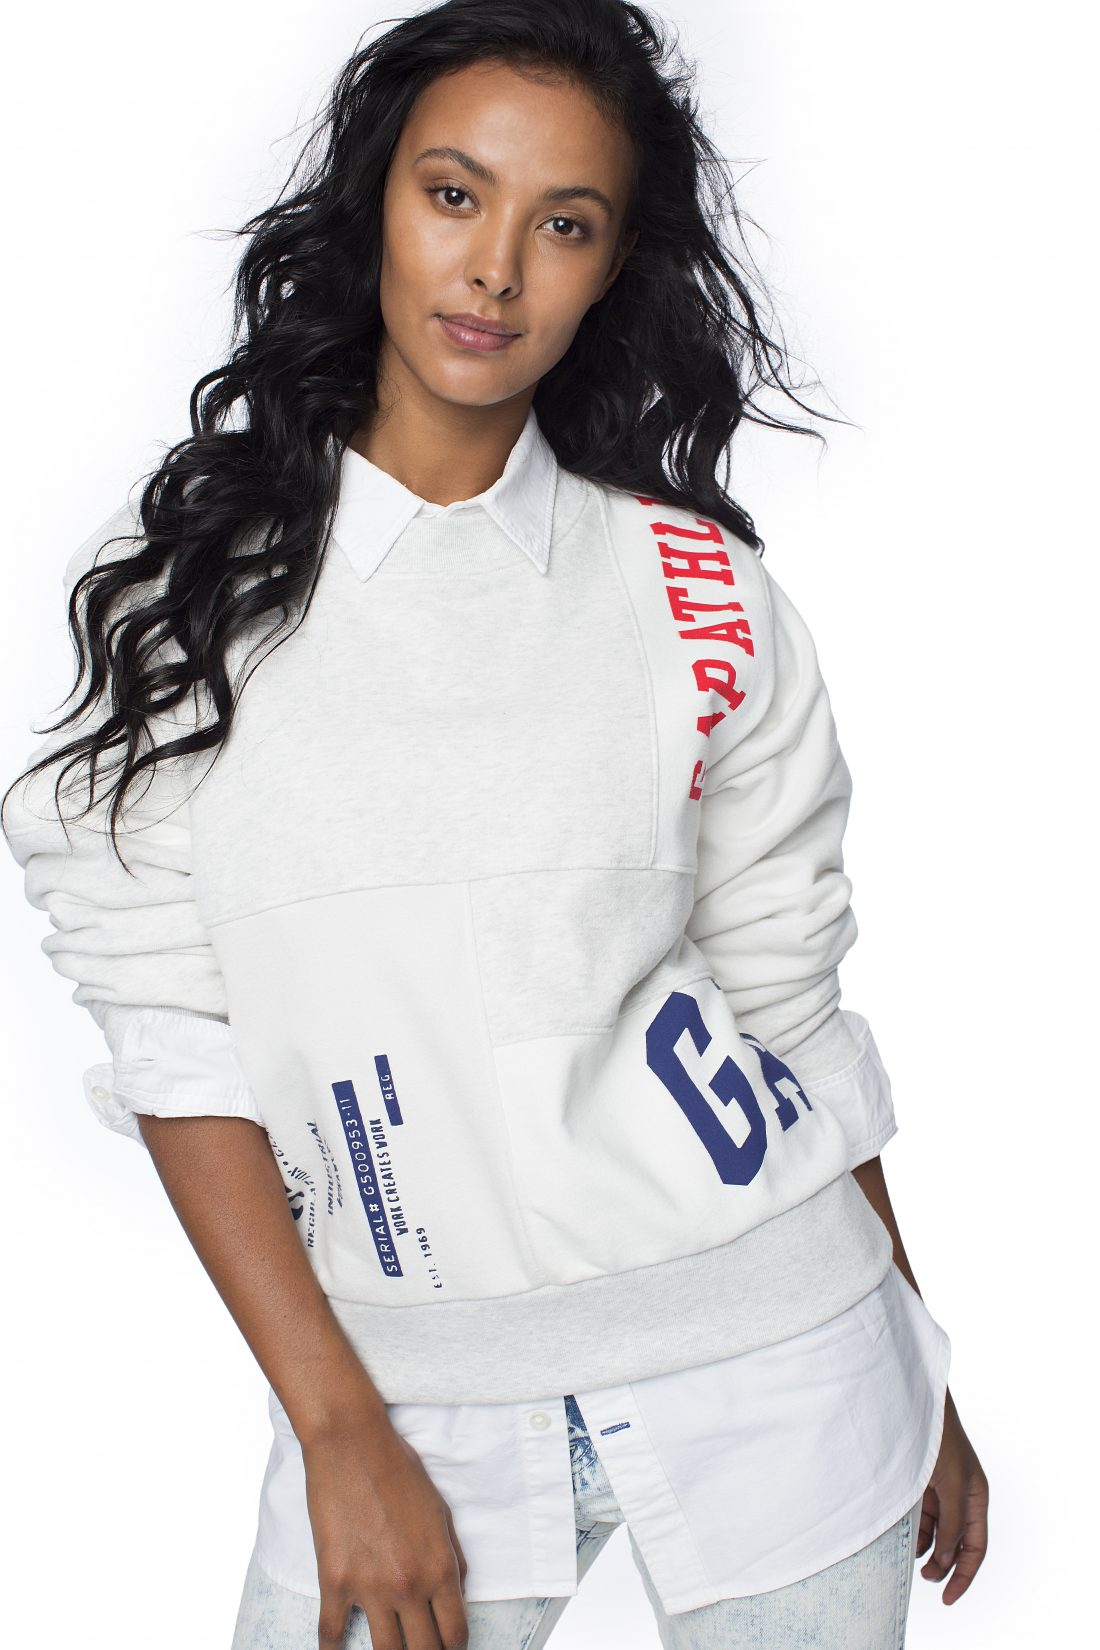 SZA and Maya Jama mix it up in new Gap 'Logo Remix' campaign